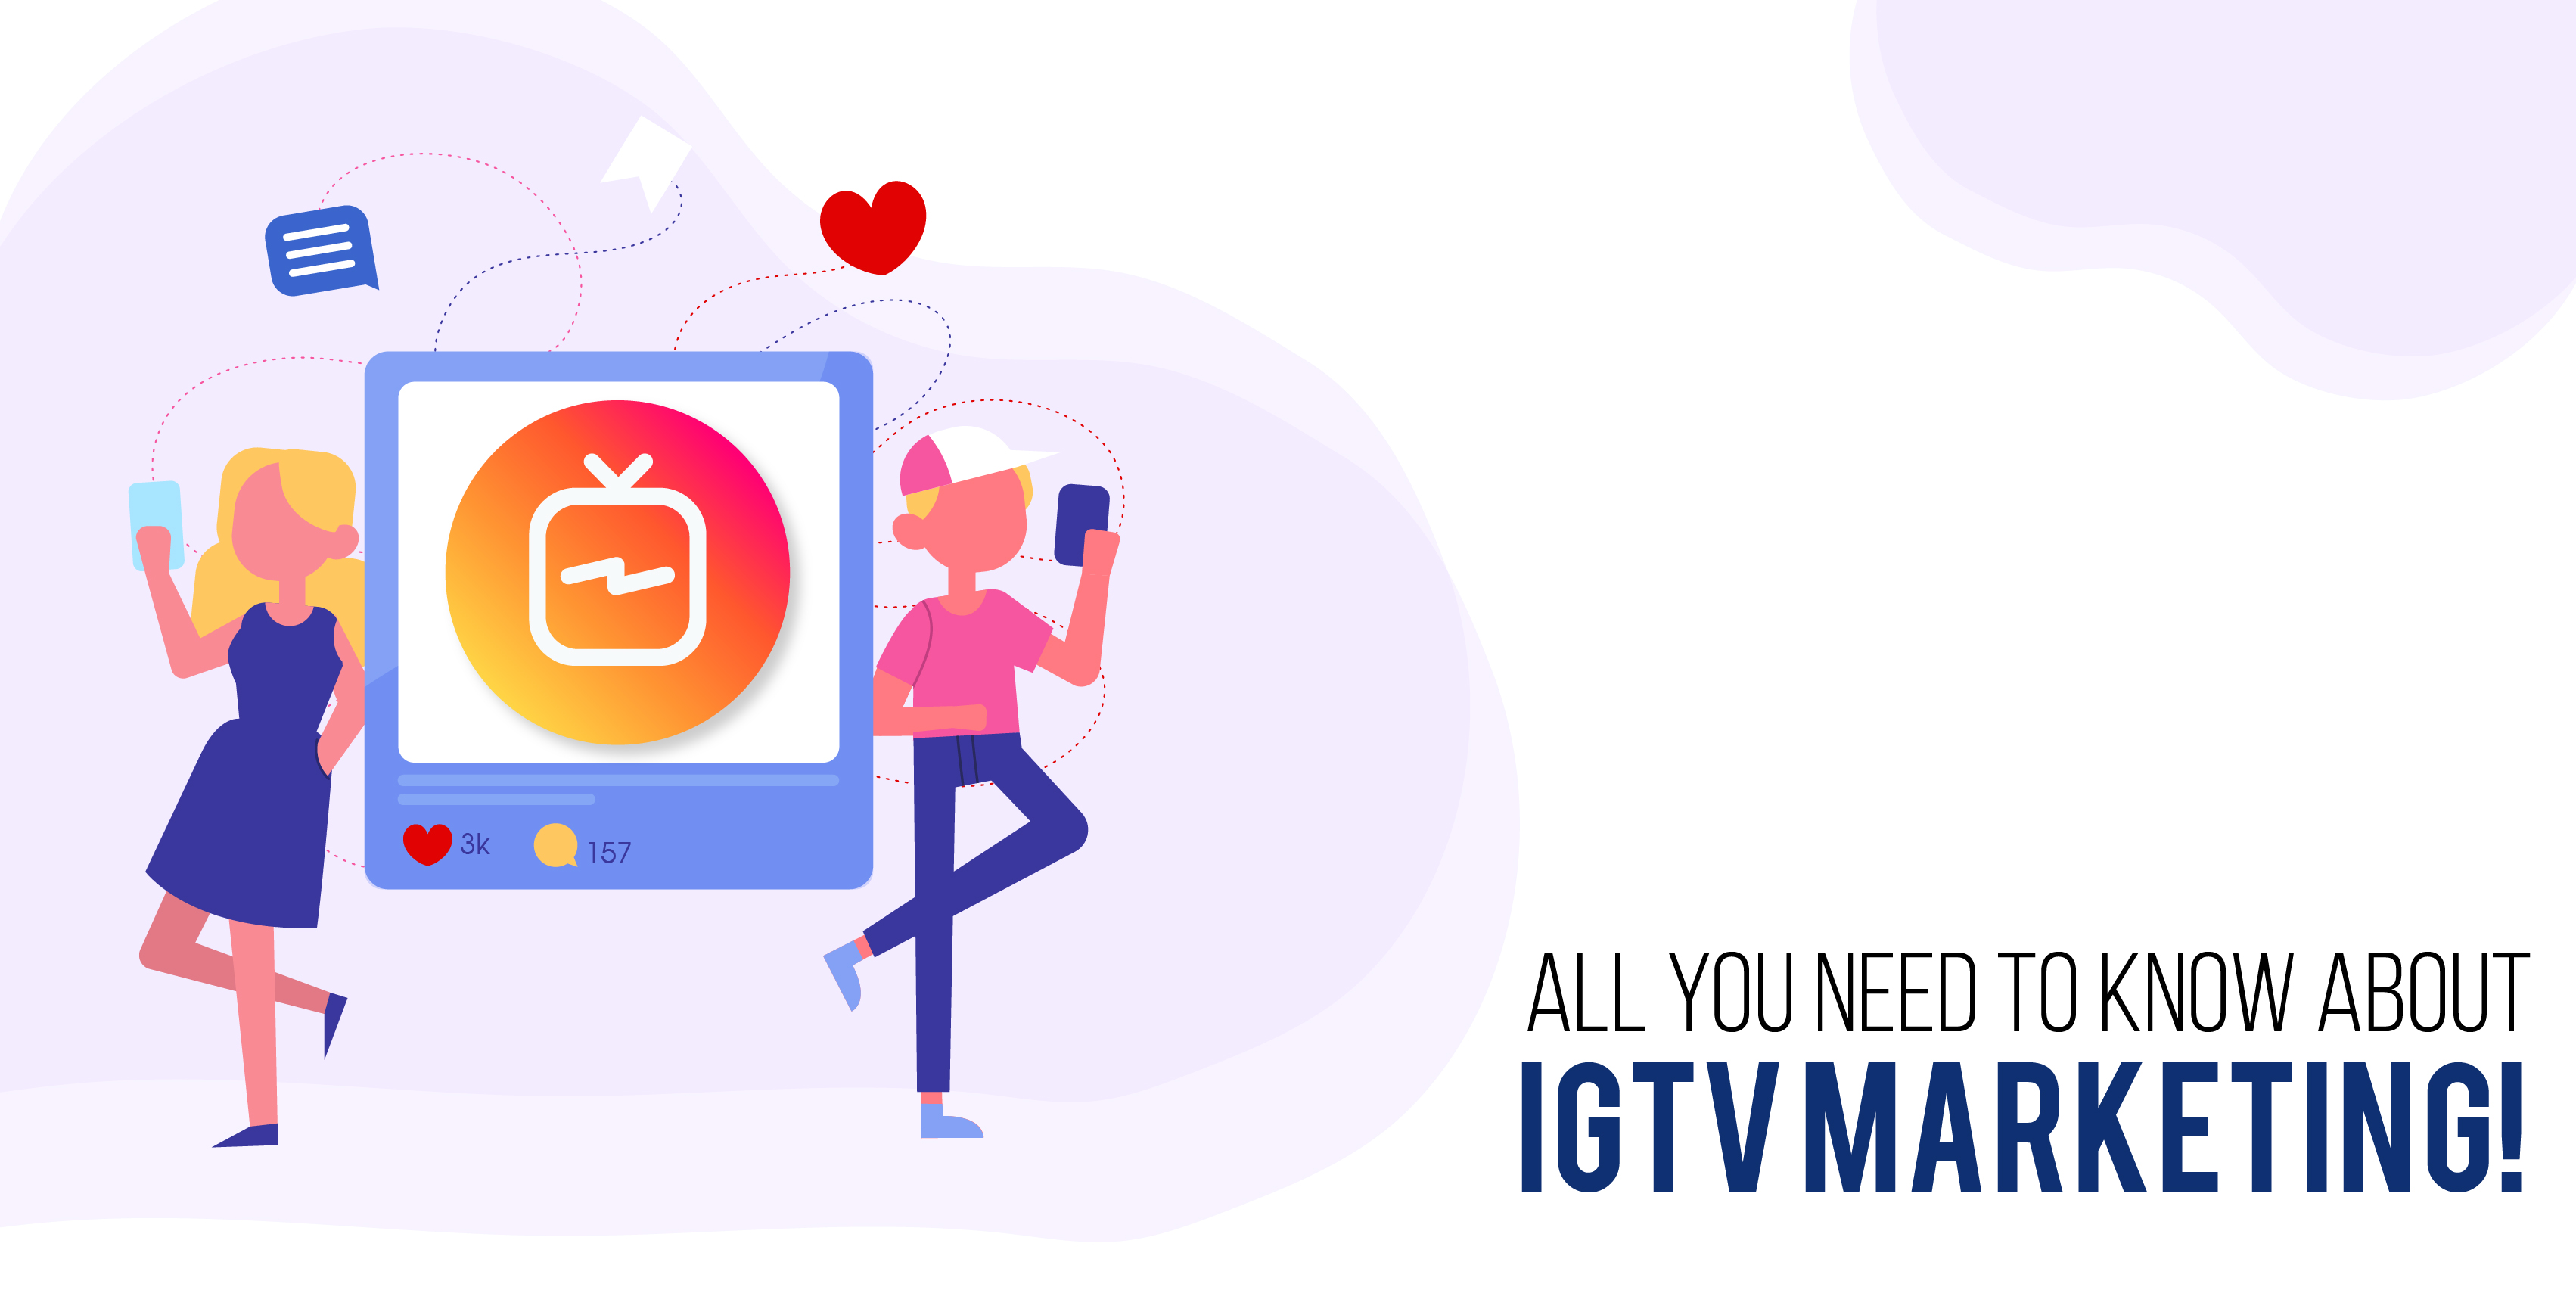 All you need to know about IGTV marketing!